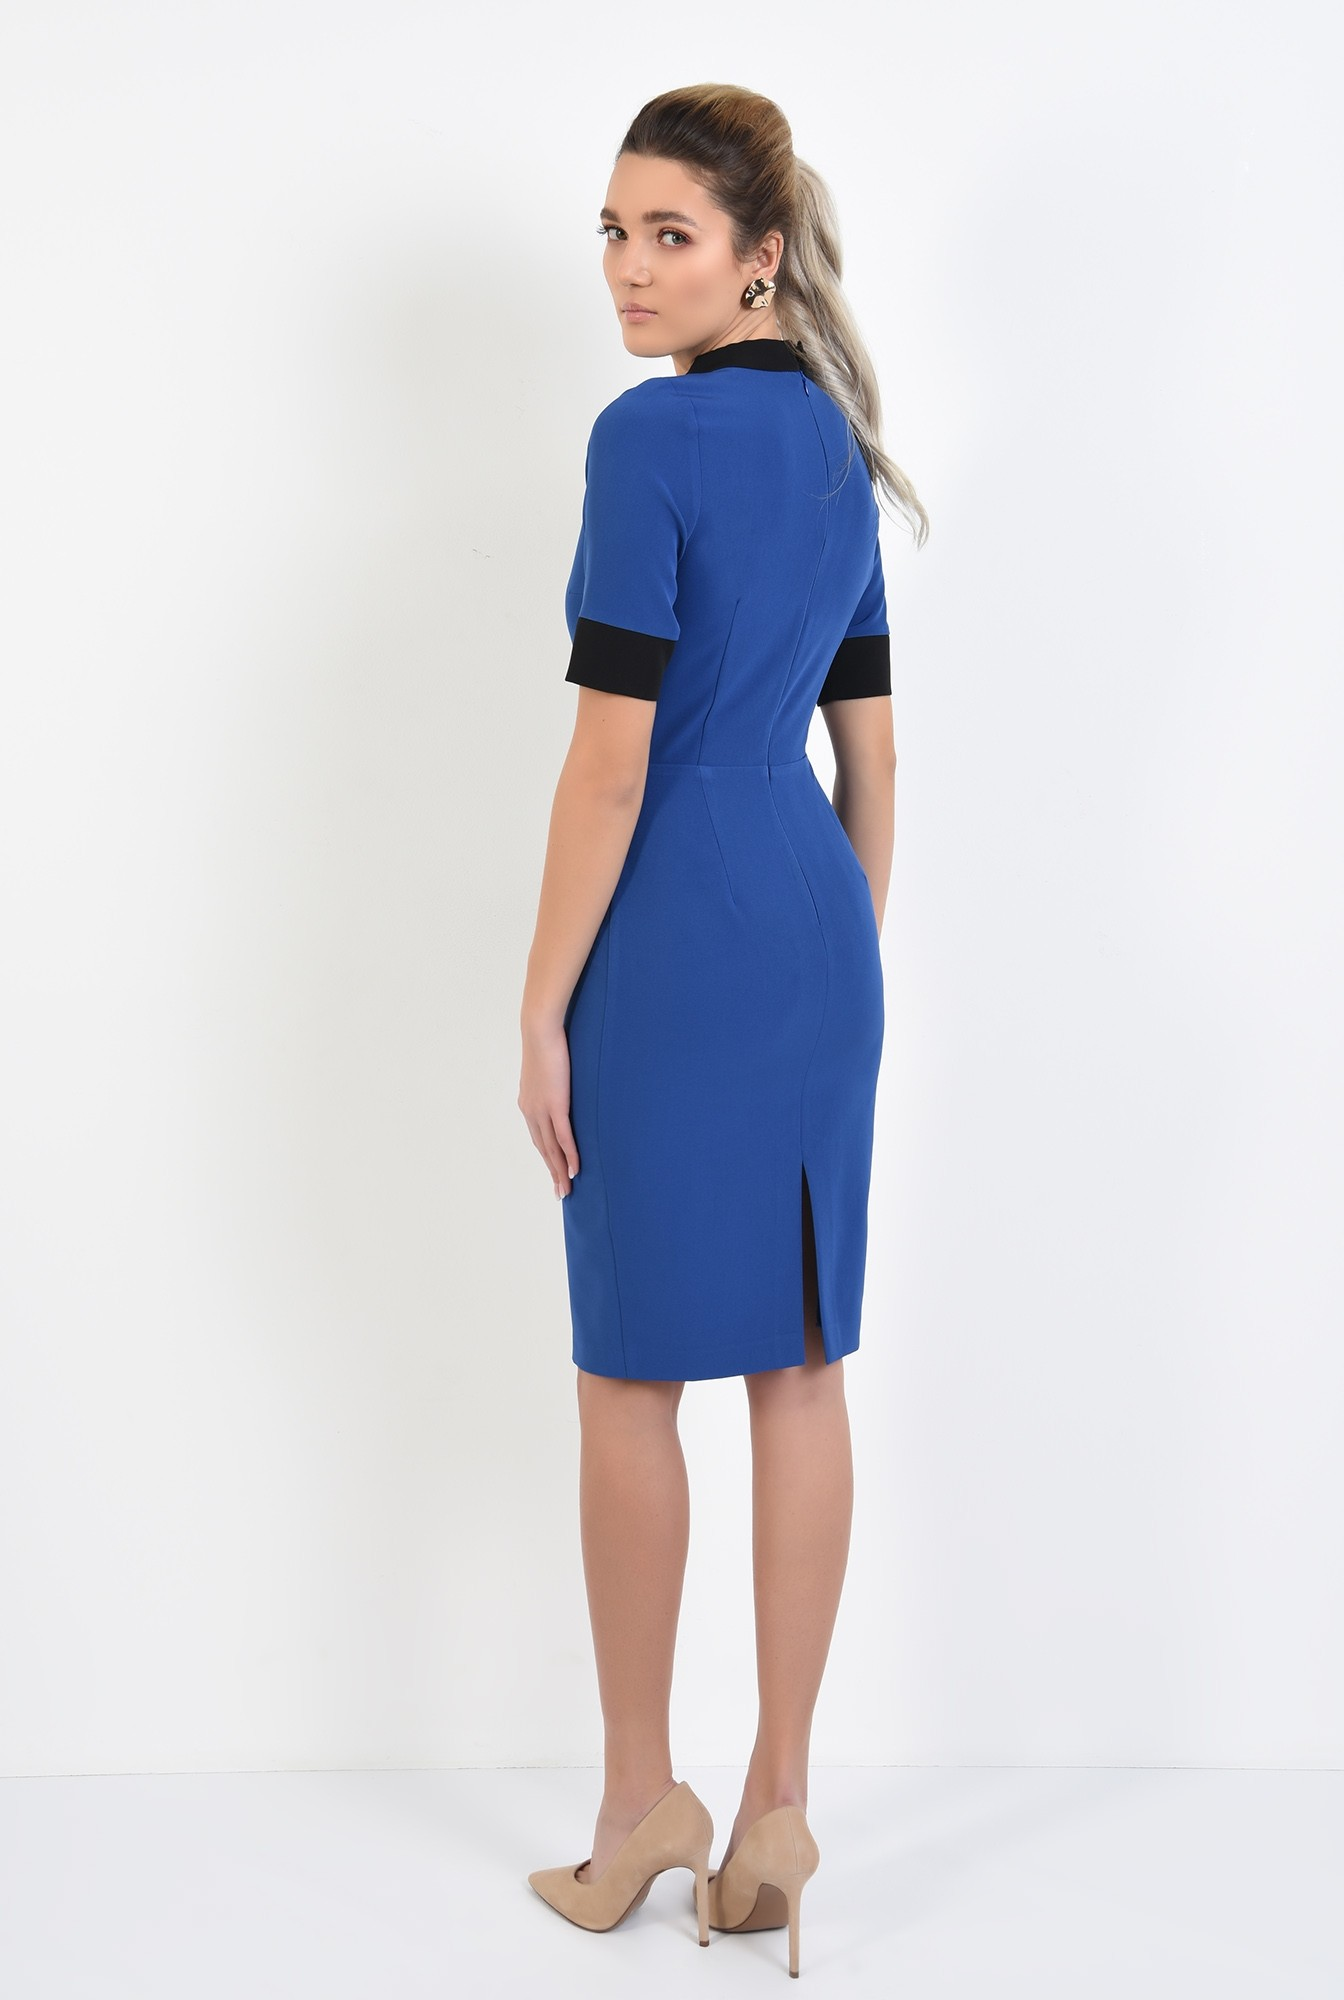 1 - rochie office, midi, conica, maneci scurte, borduri in contrast